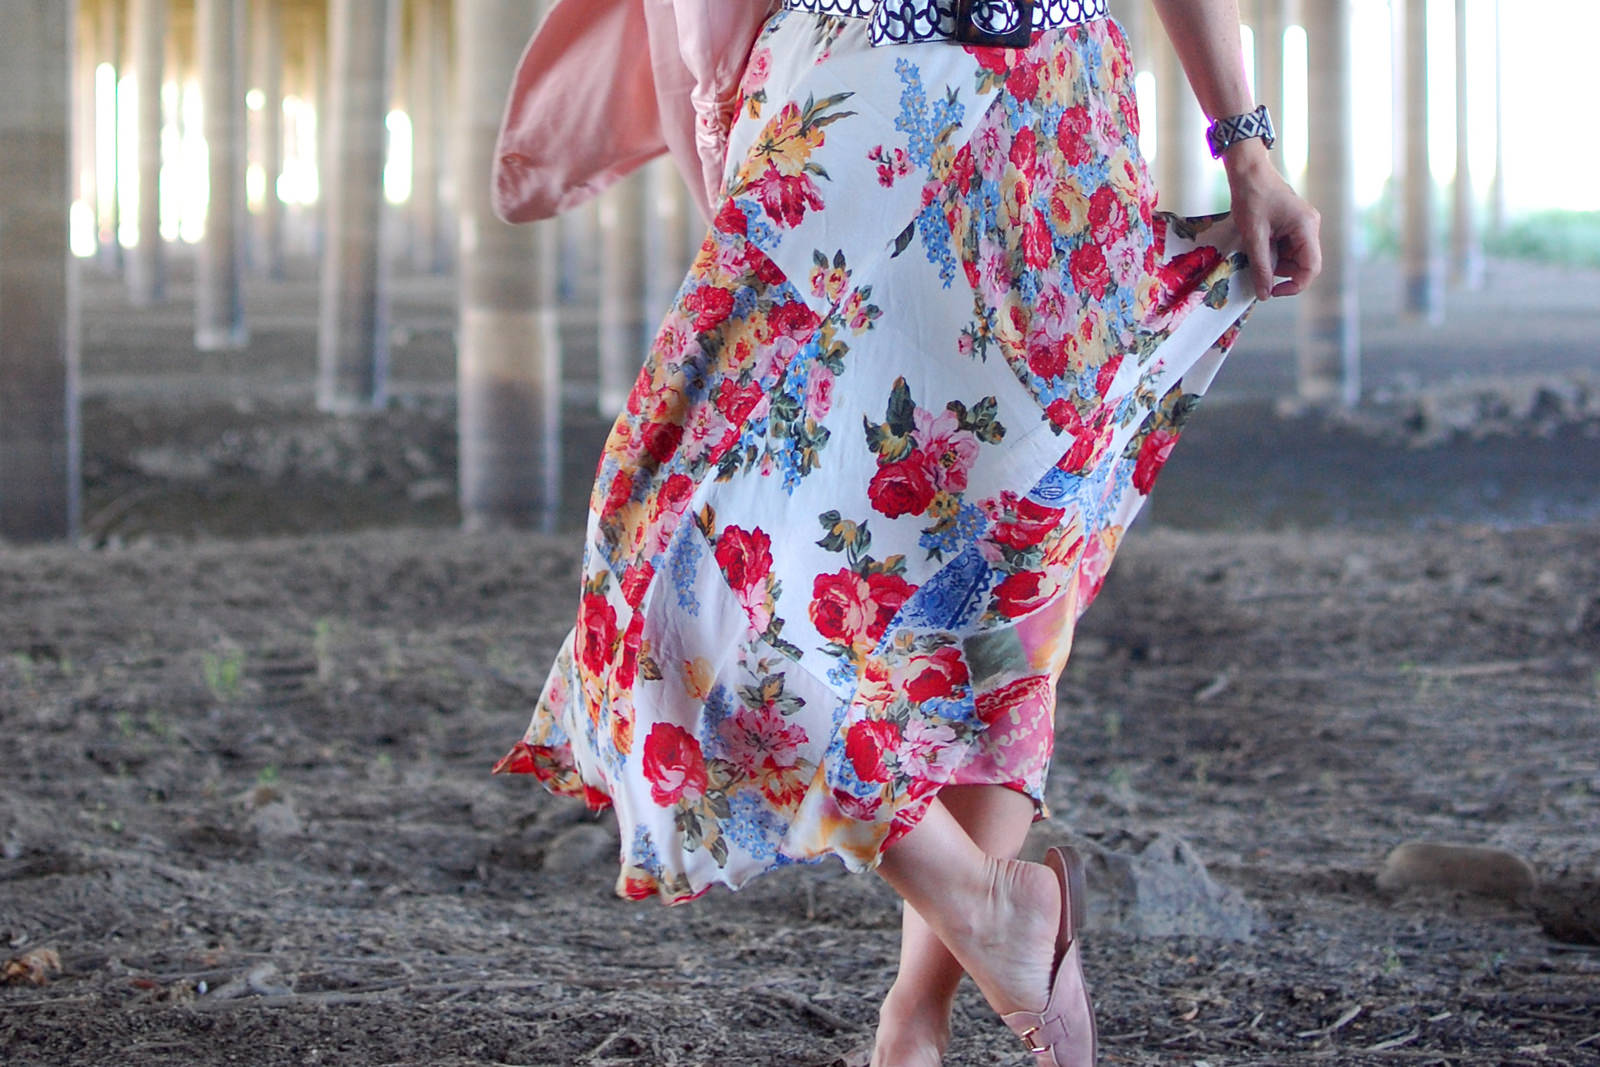 floral skirt suede slipper mule blush ootd daily outfit blog whatiwore2day